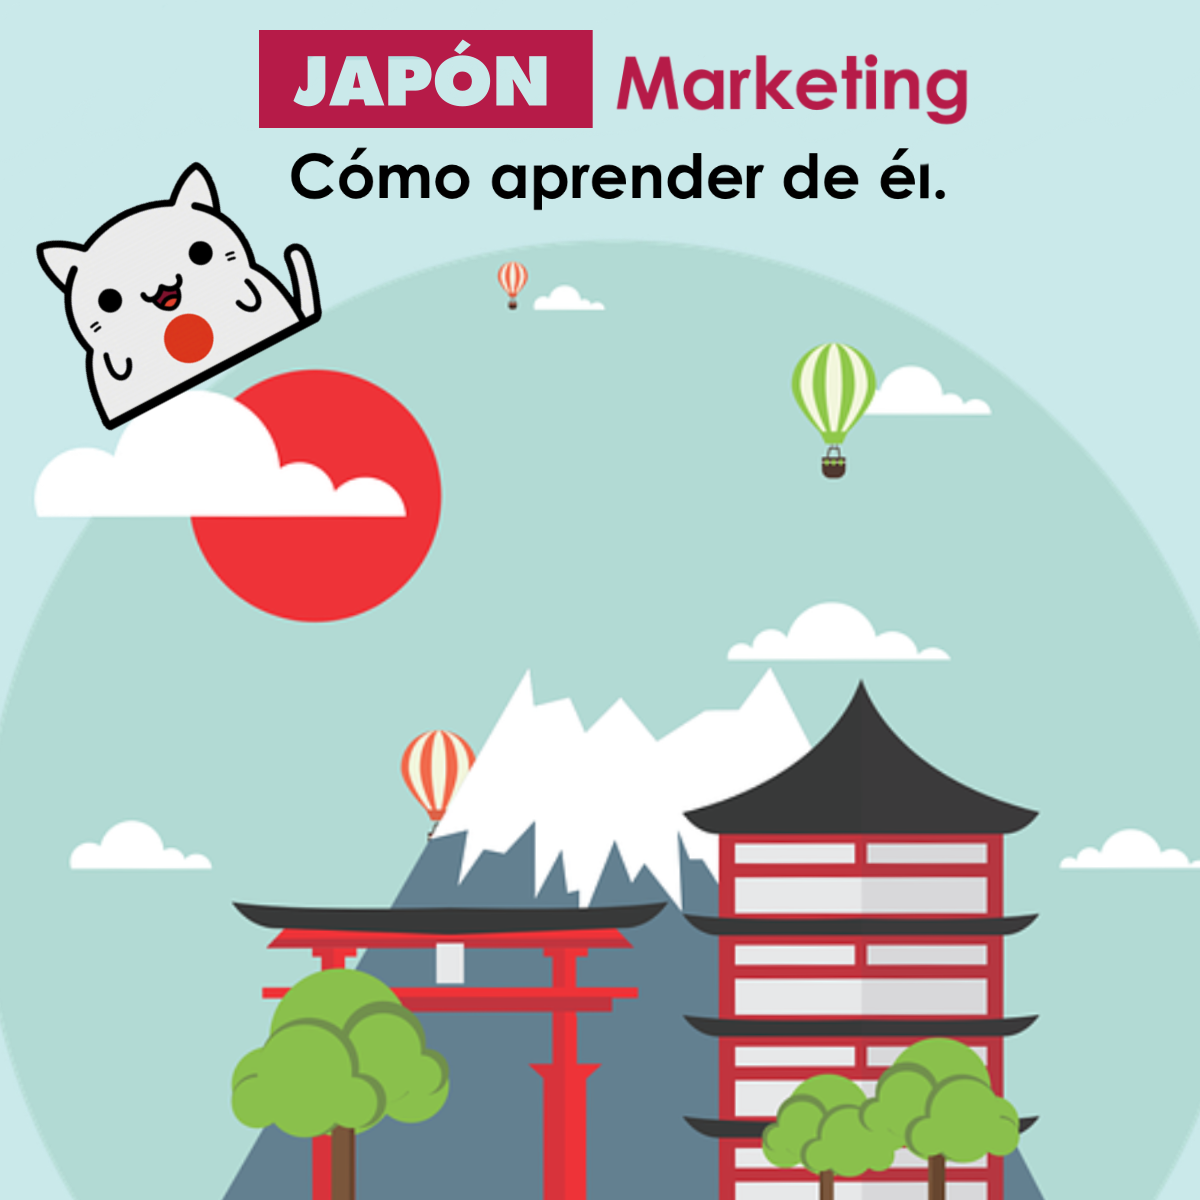 Militarium - Marketing japonés